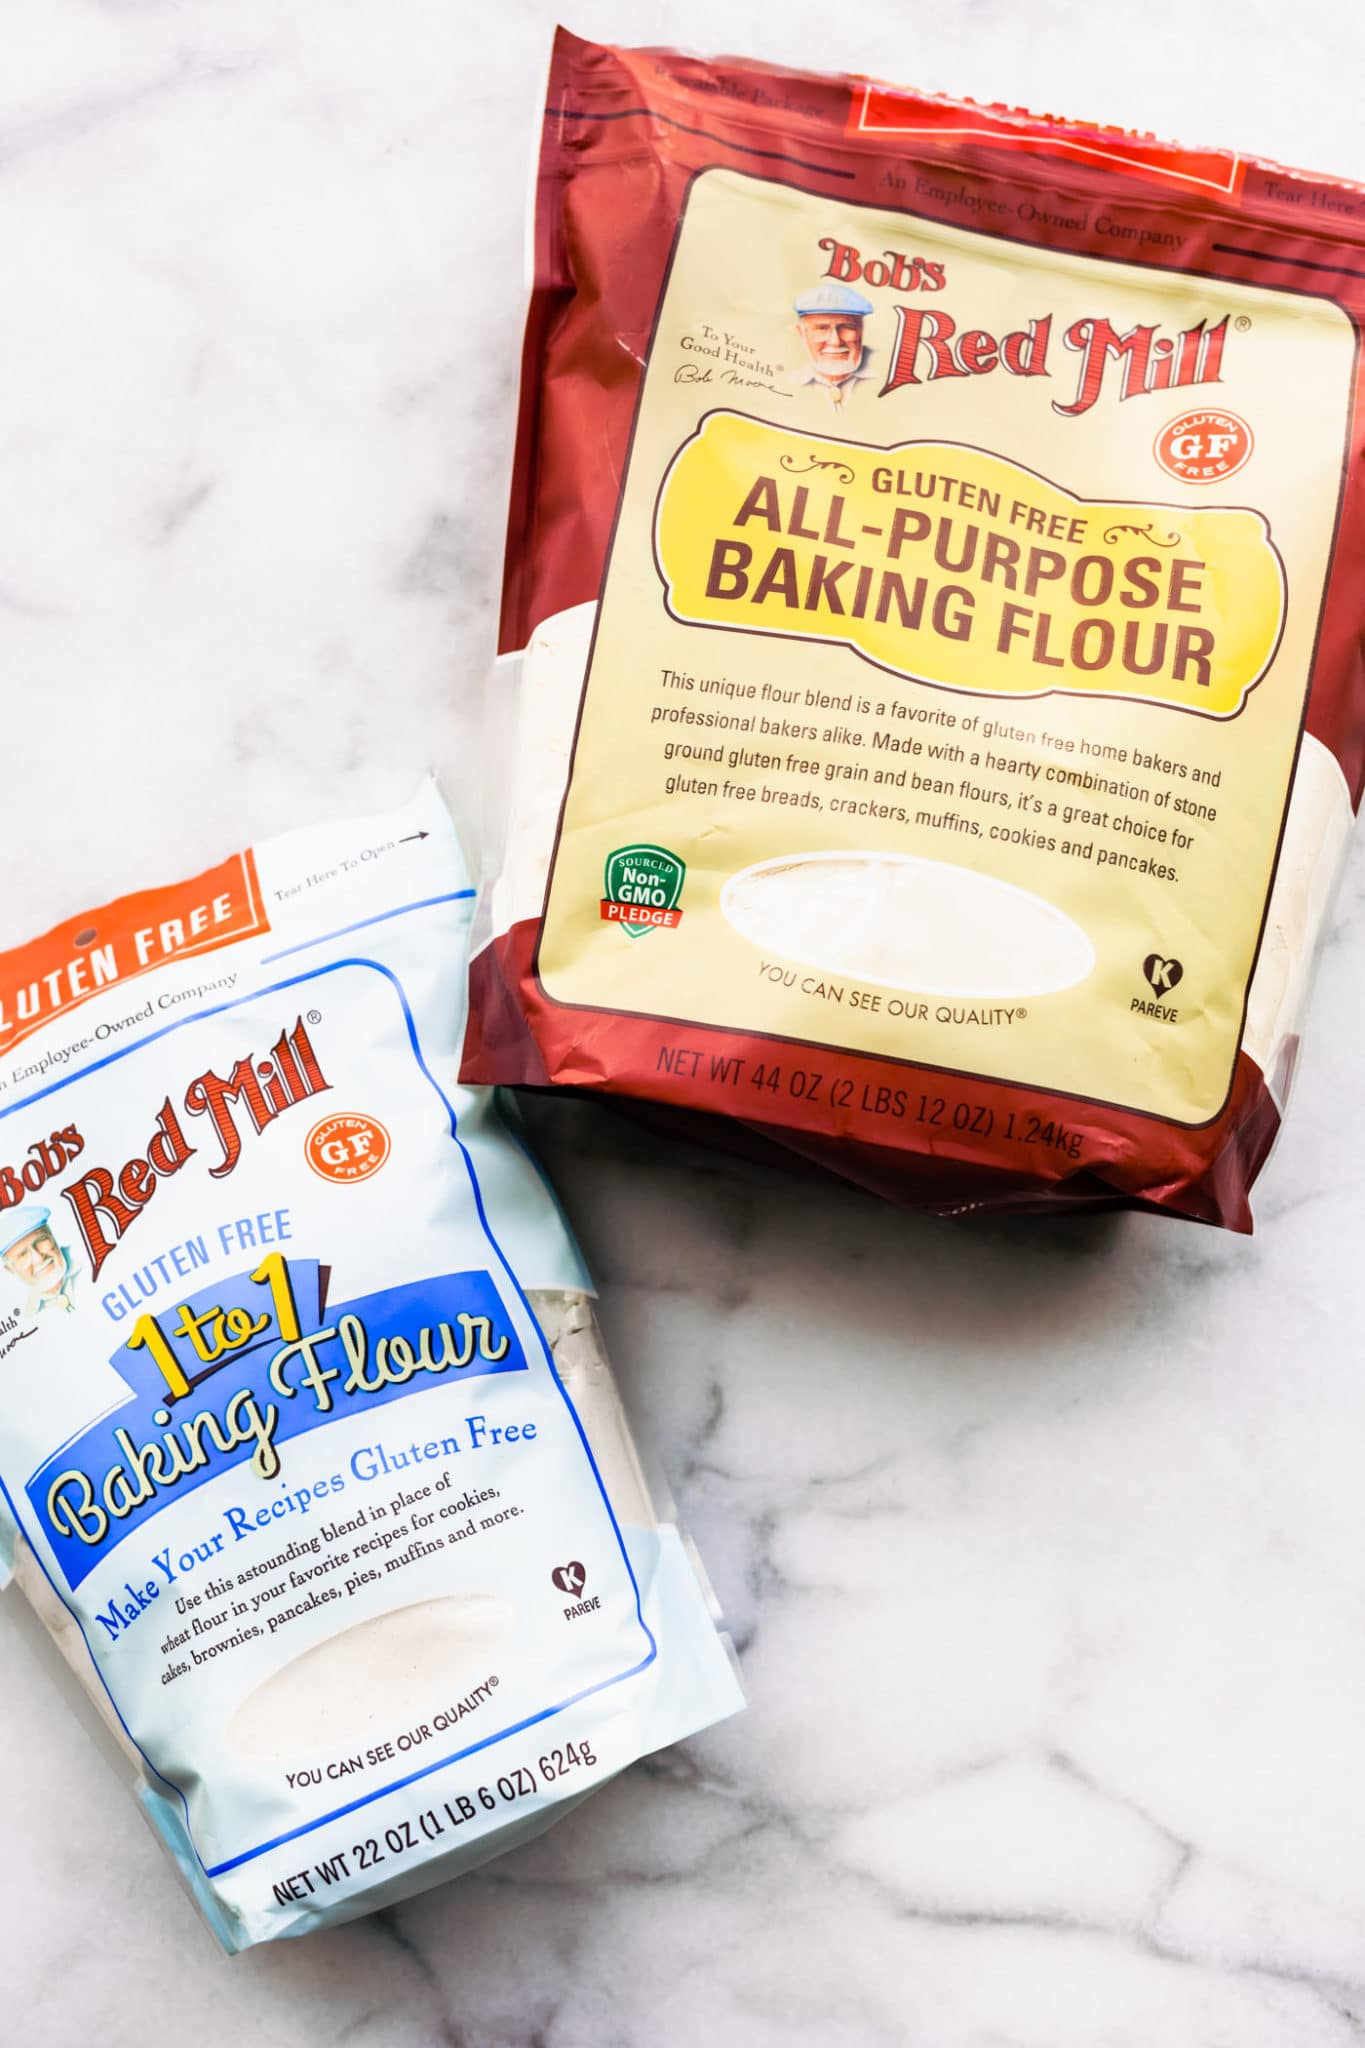 Bob's Red Mill 1:1 Gluten Free Baking Flour and All-Purpose Gluten Free Baking Flour